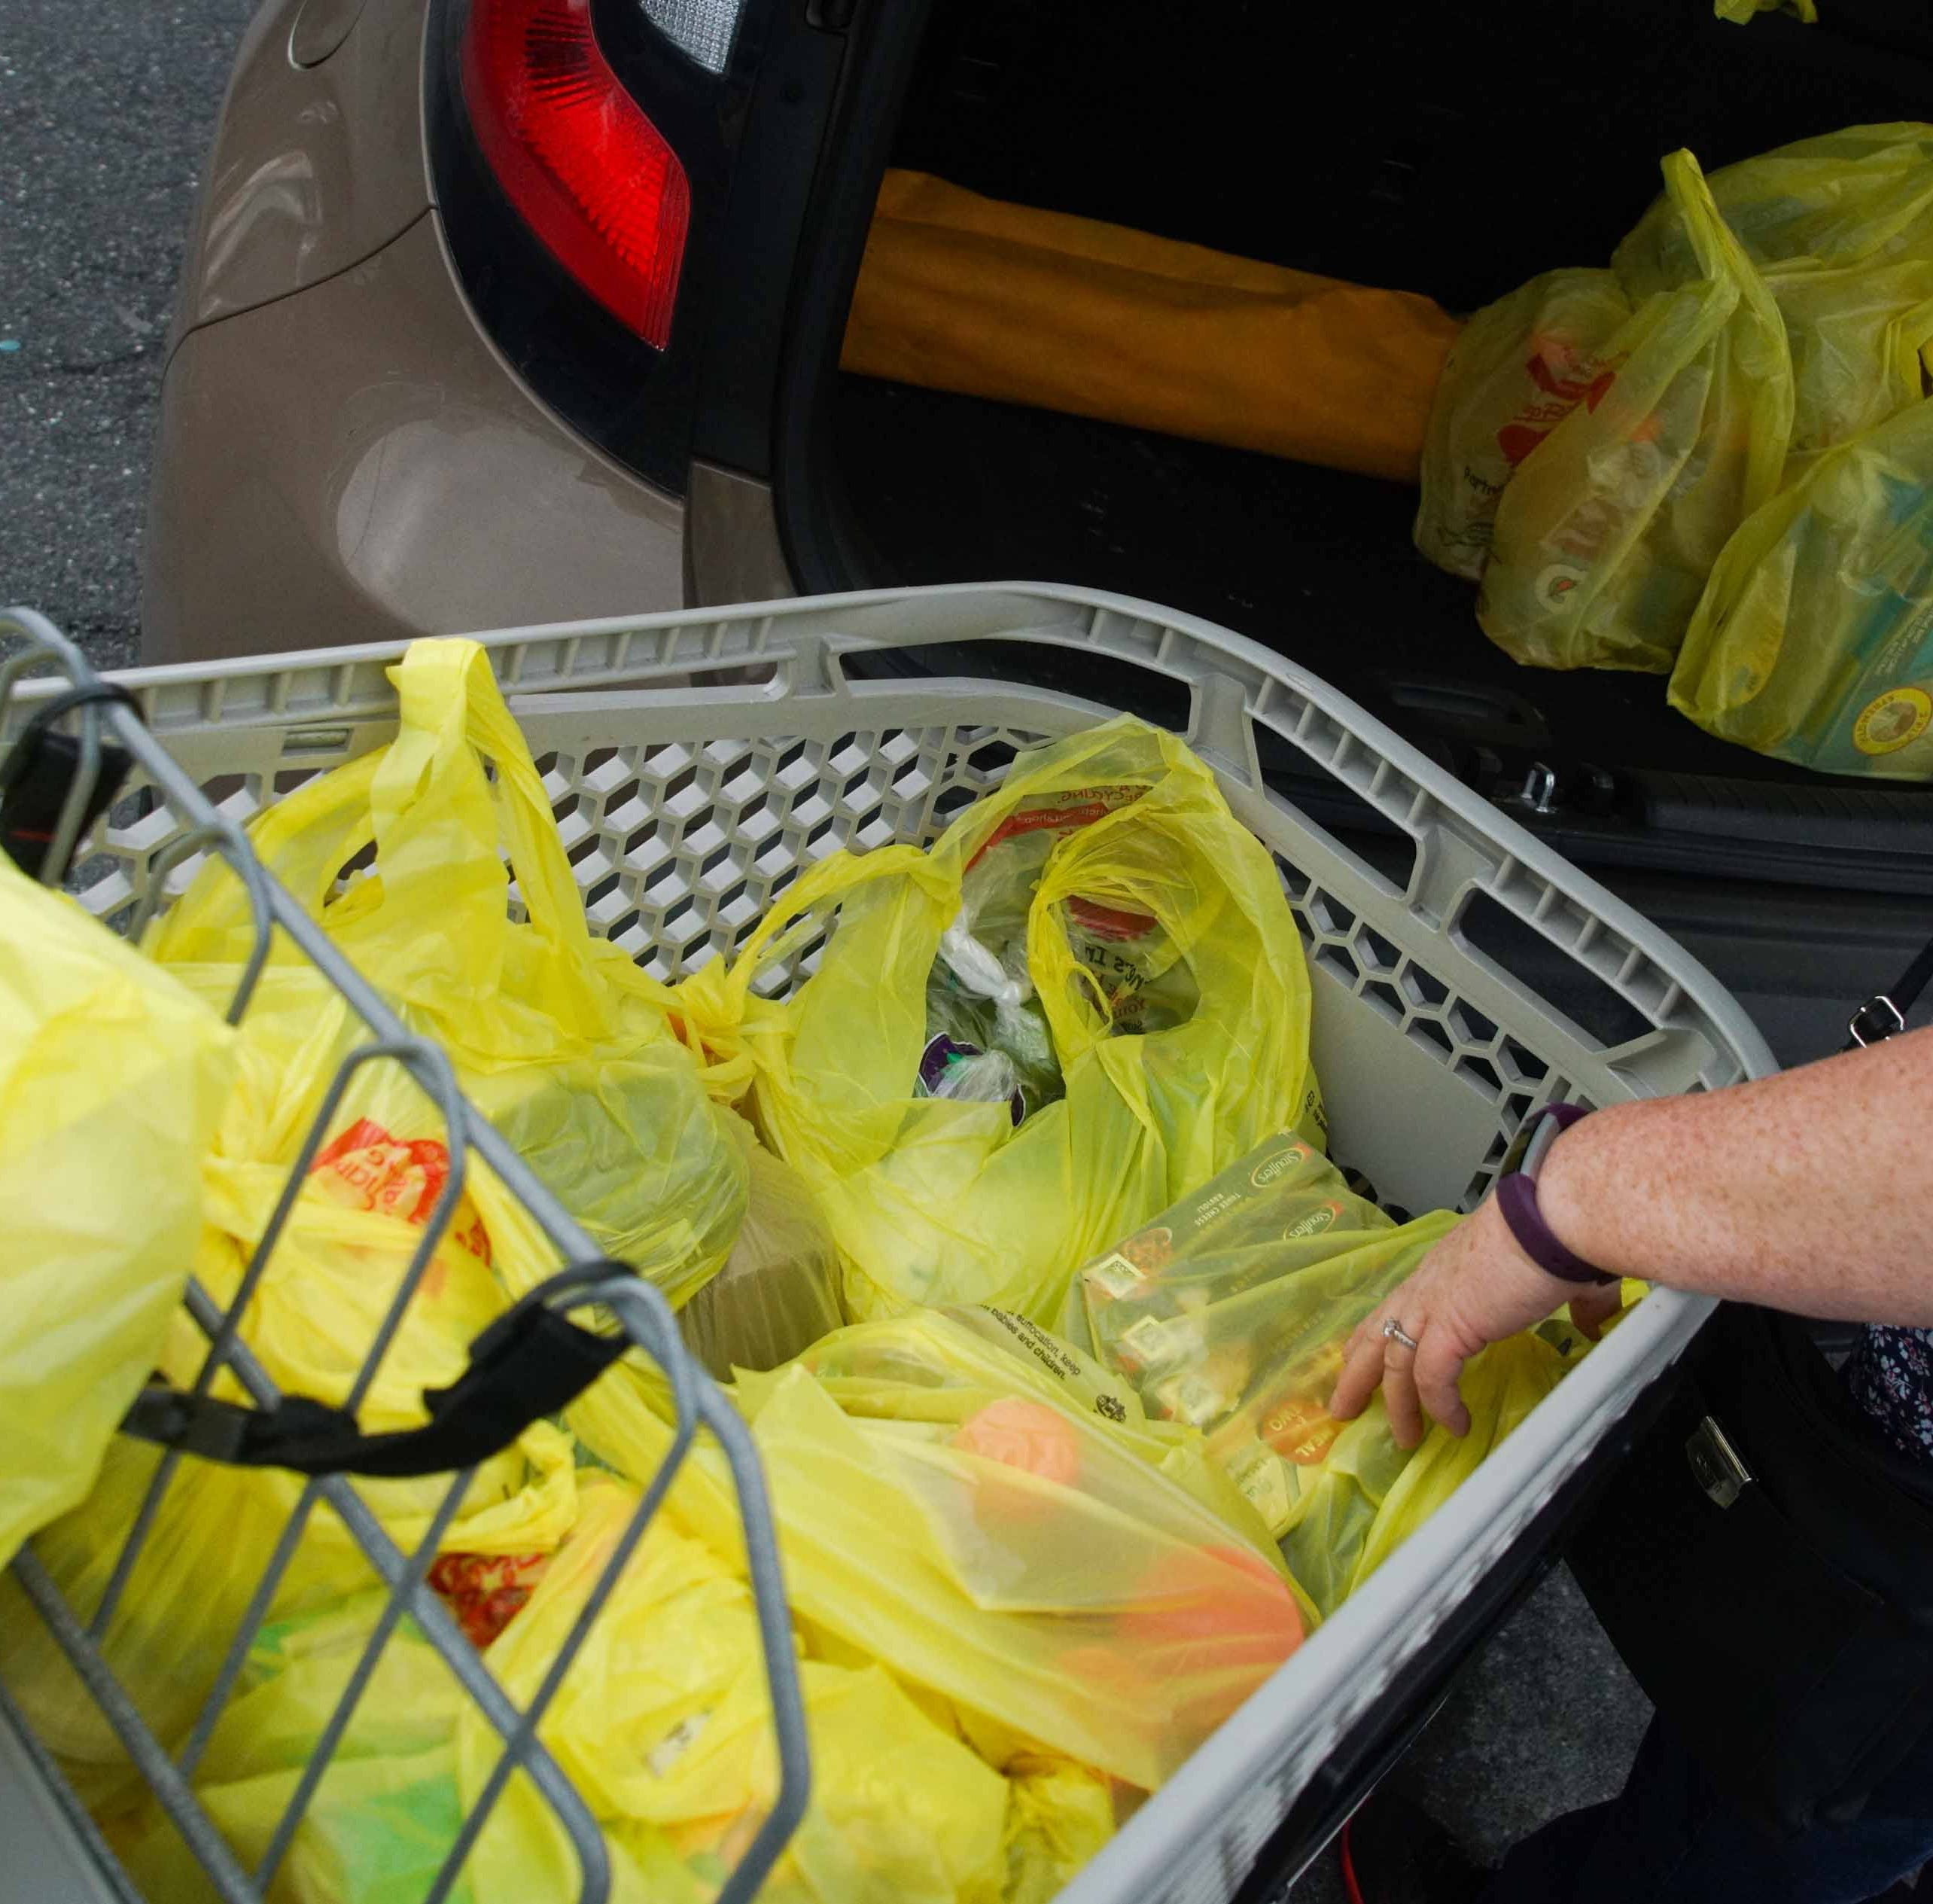 Delaware might be the next state to ban plastic shopping bags